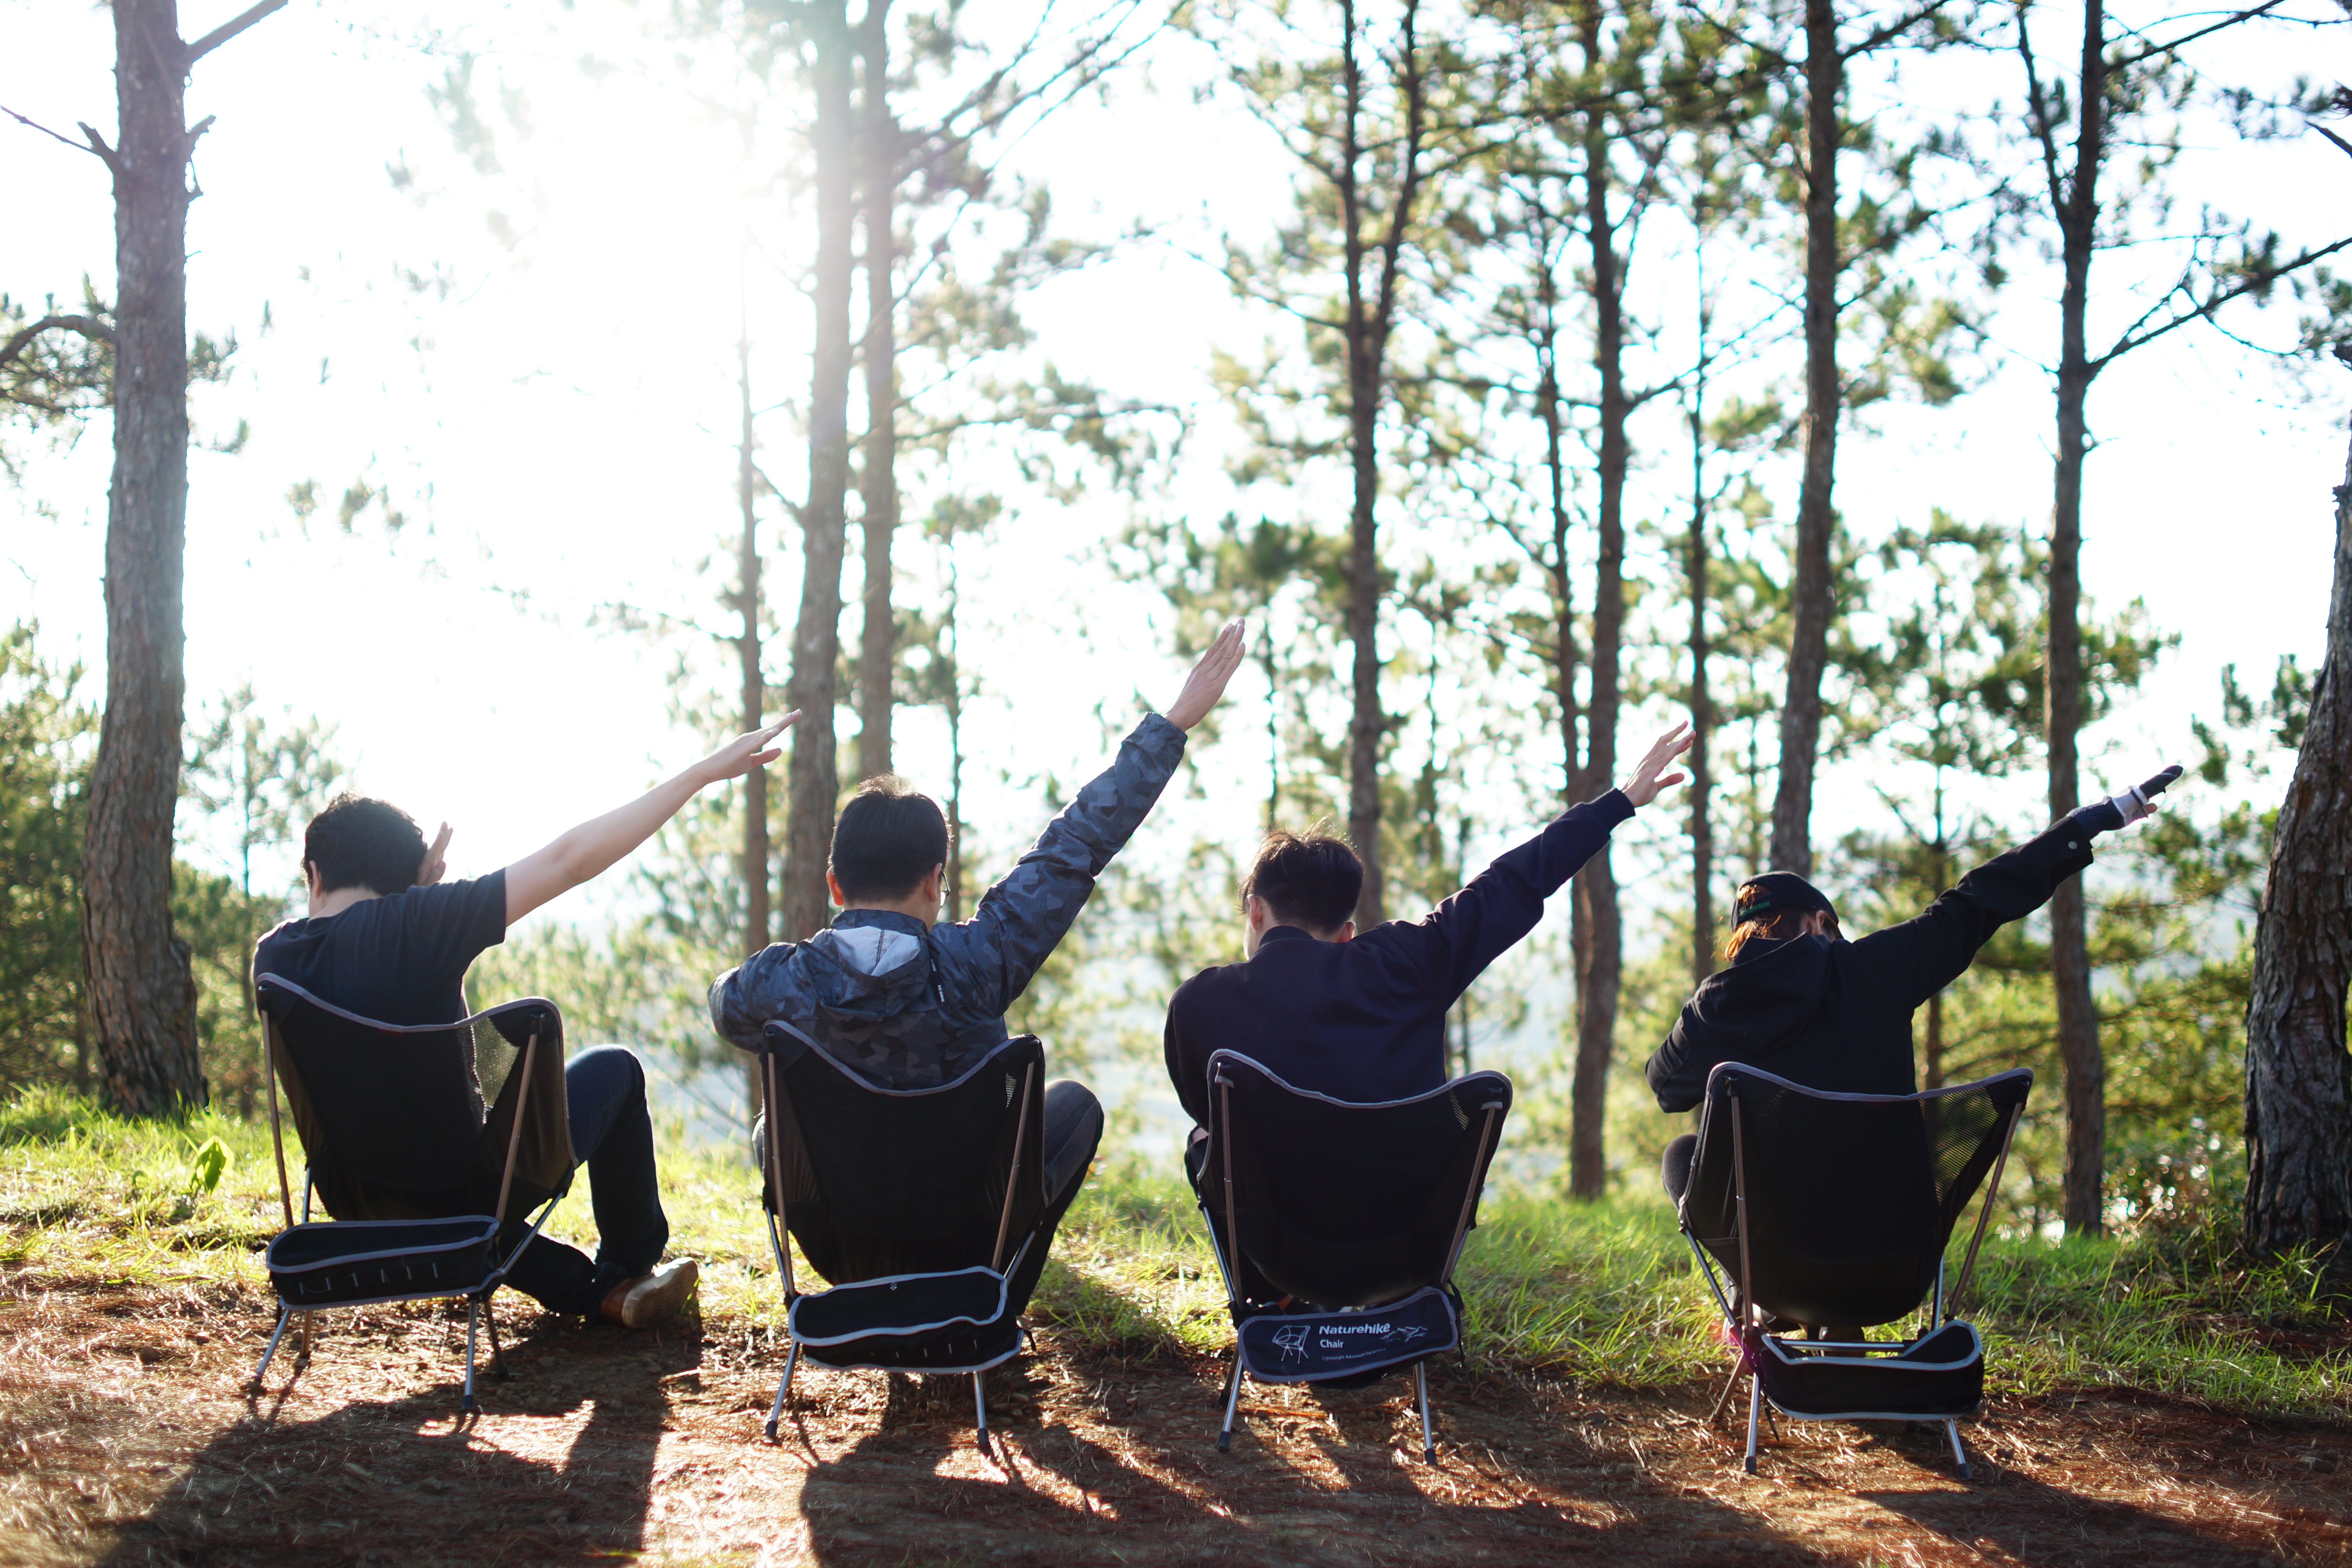 four people sitting on camping chairs near trees